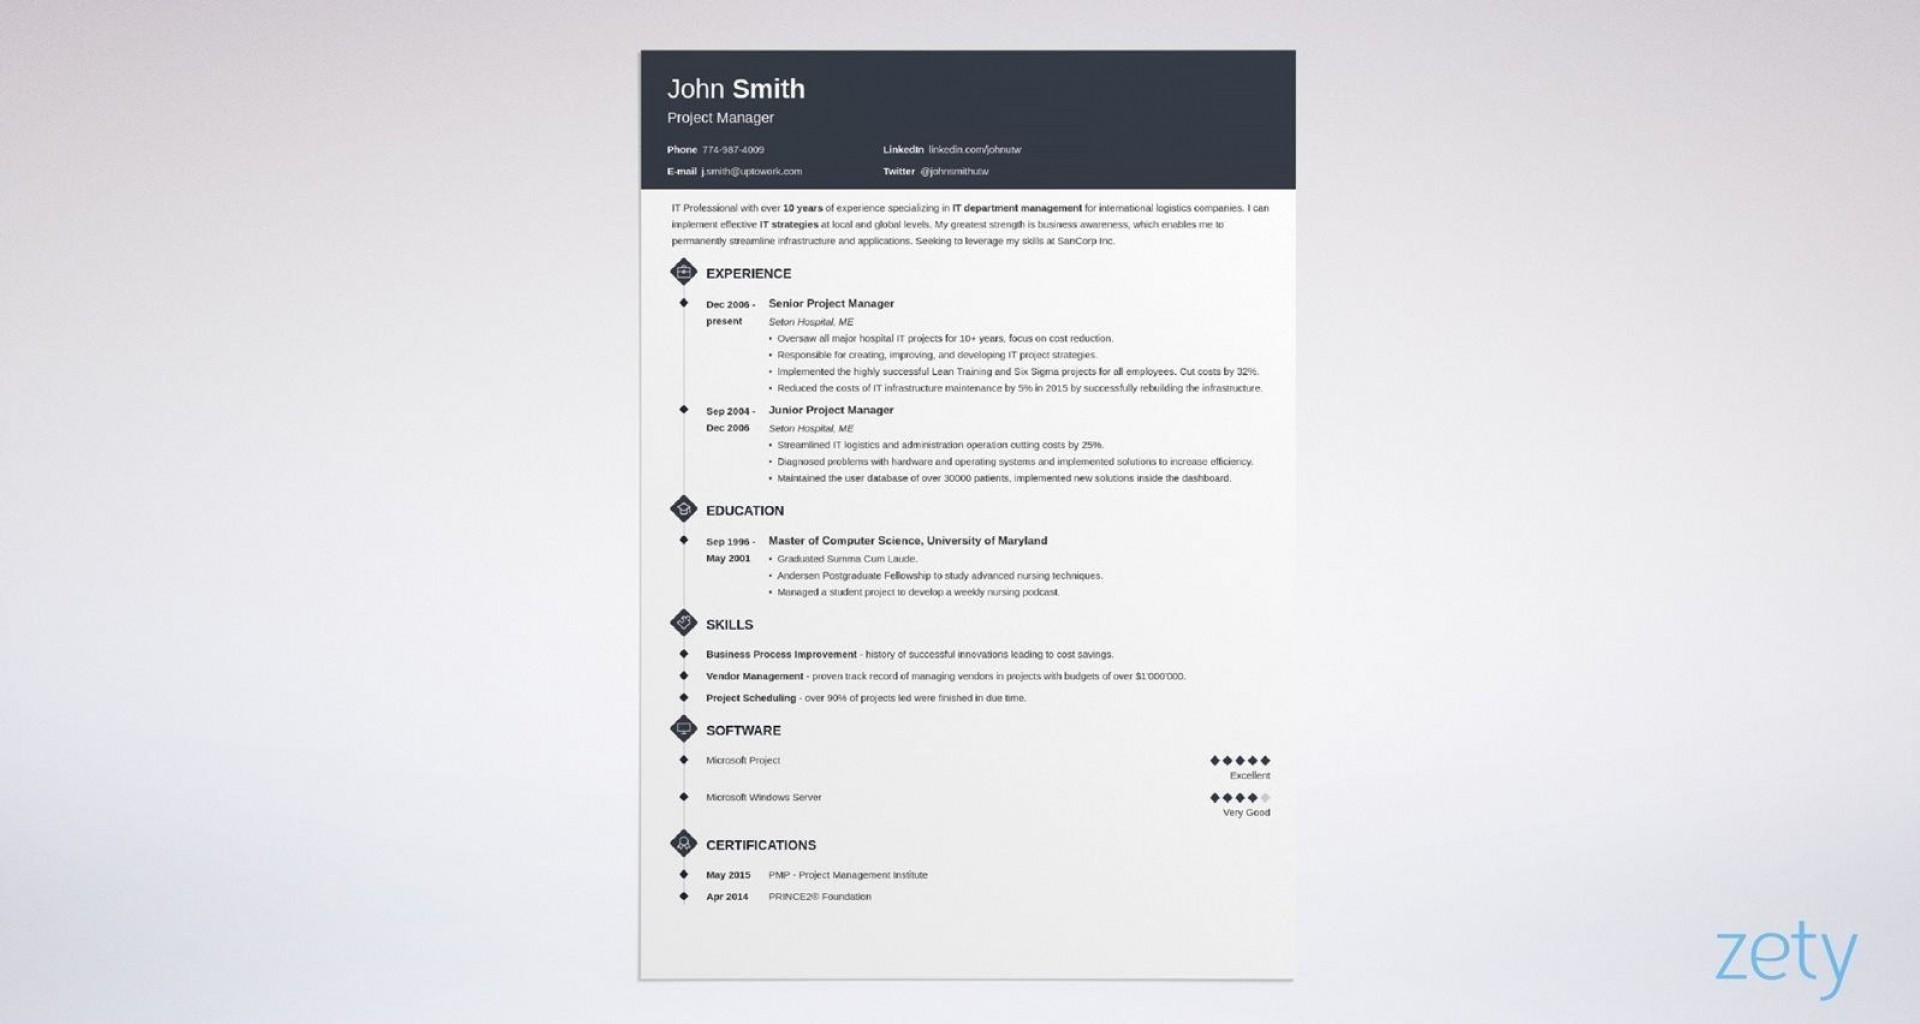 003 Fearsome Best Professional Resume Template Inspiration  Reddit 2020 Download1920